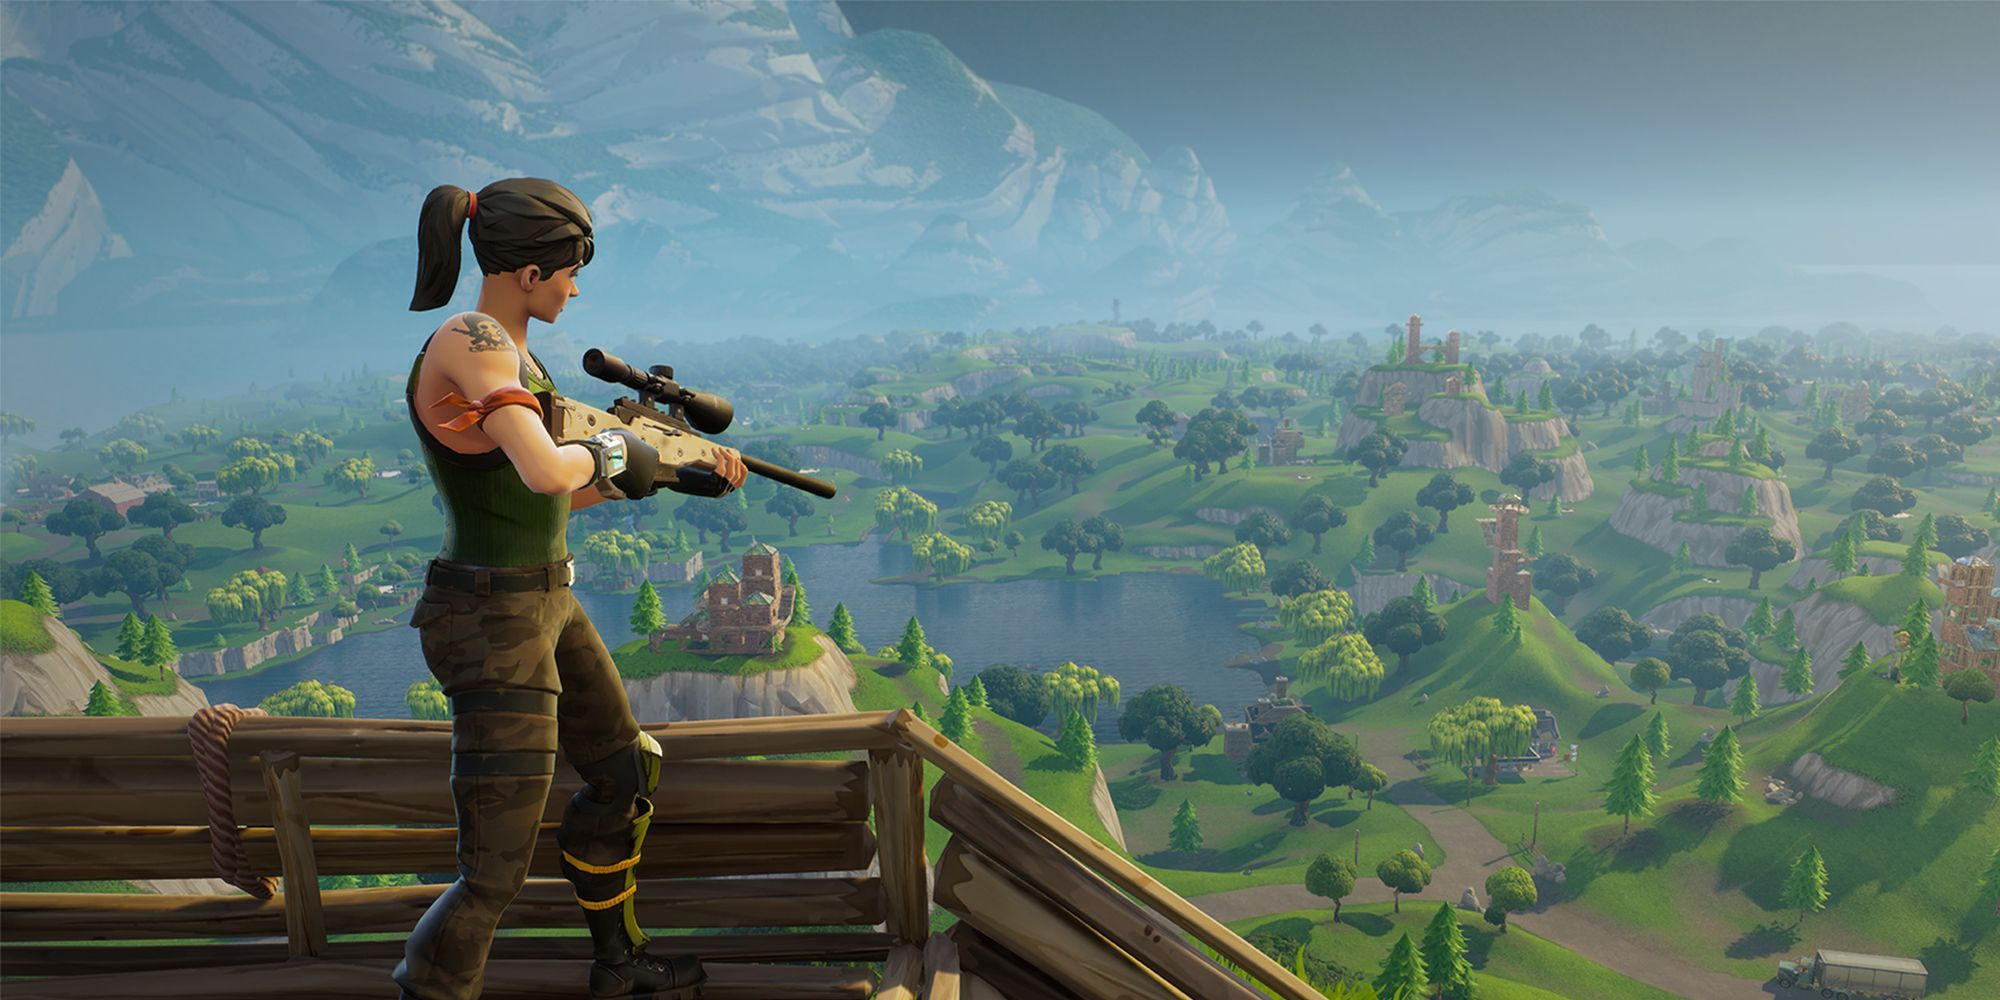 20 Best New Video Games In 2019 New Game Releases For Xbox Ps4